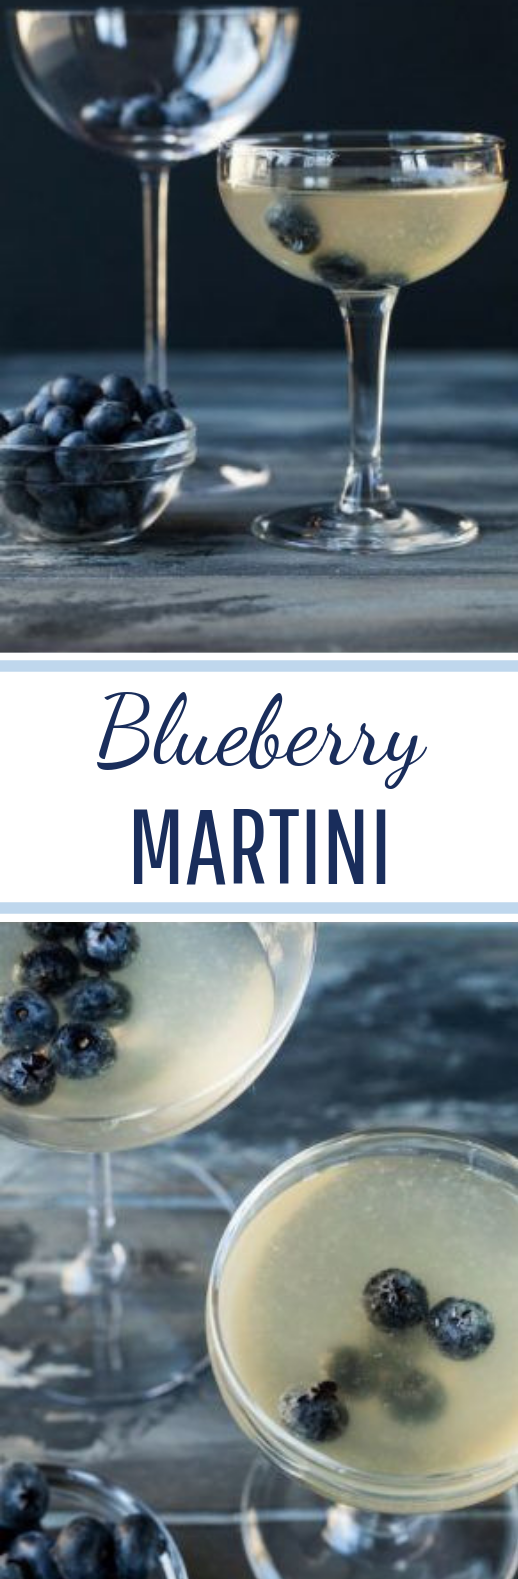 Blueberry Martini #drink #cocktails